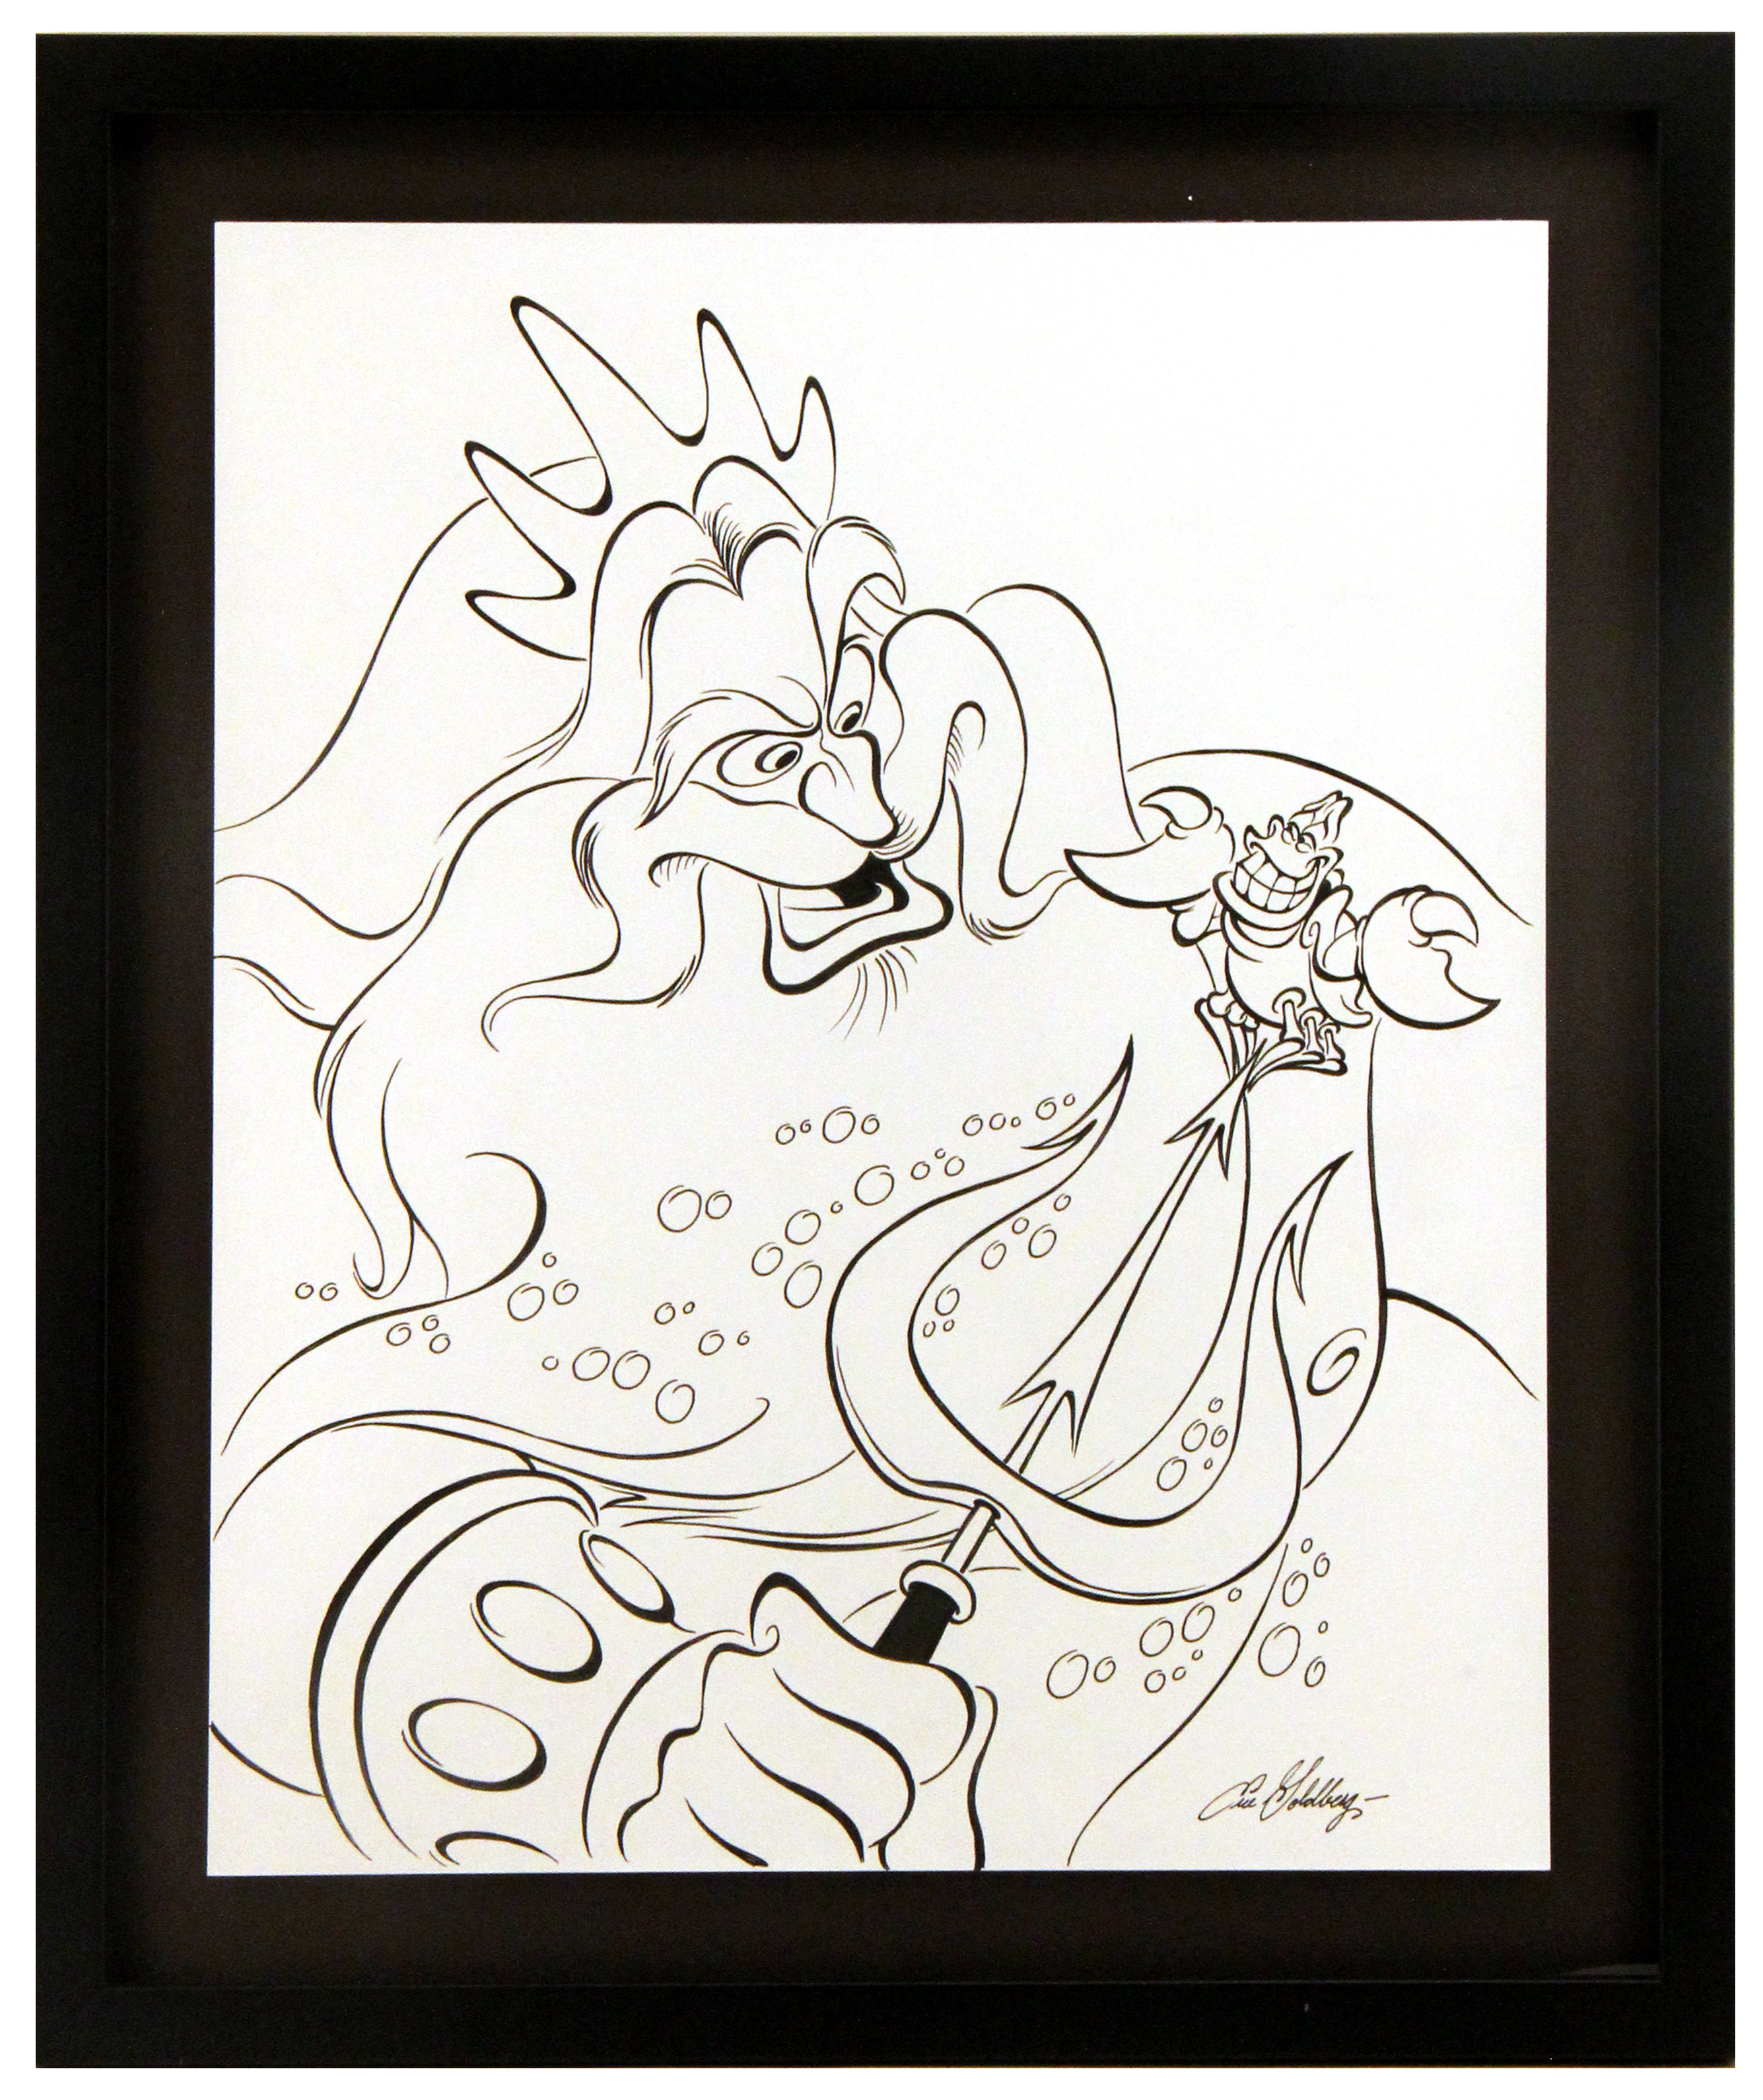 King Triton and Sebastian - Eric Goldberg, The Little Mermaid